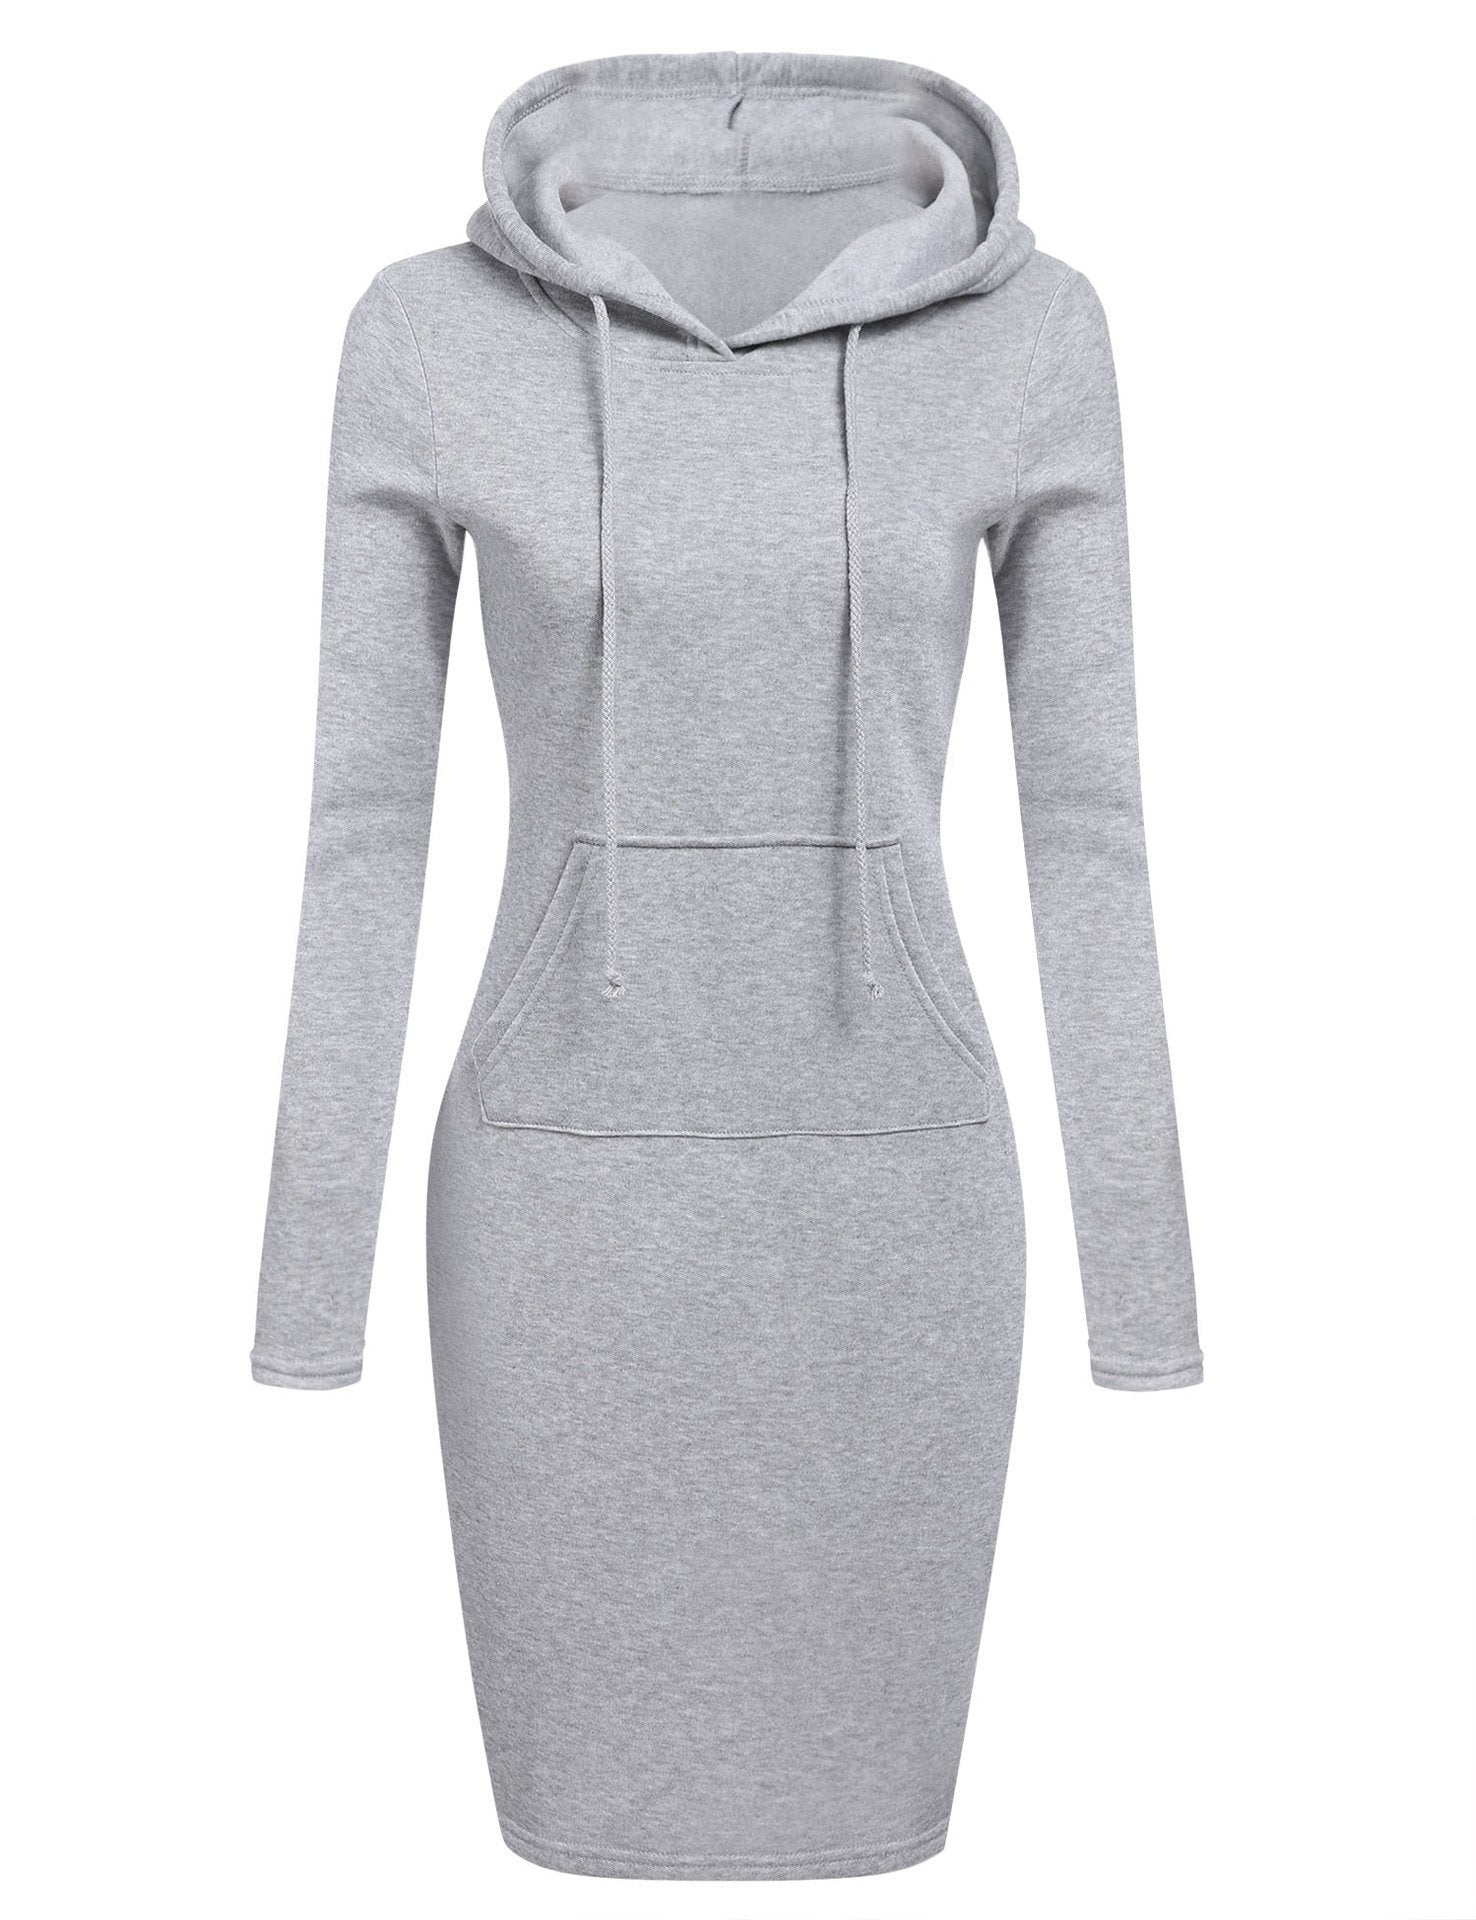 Women Stripes Pocket Knee Length Slim Casual Pullover Hoodie Dress